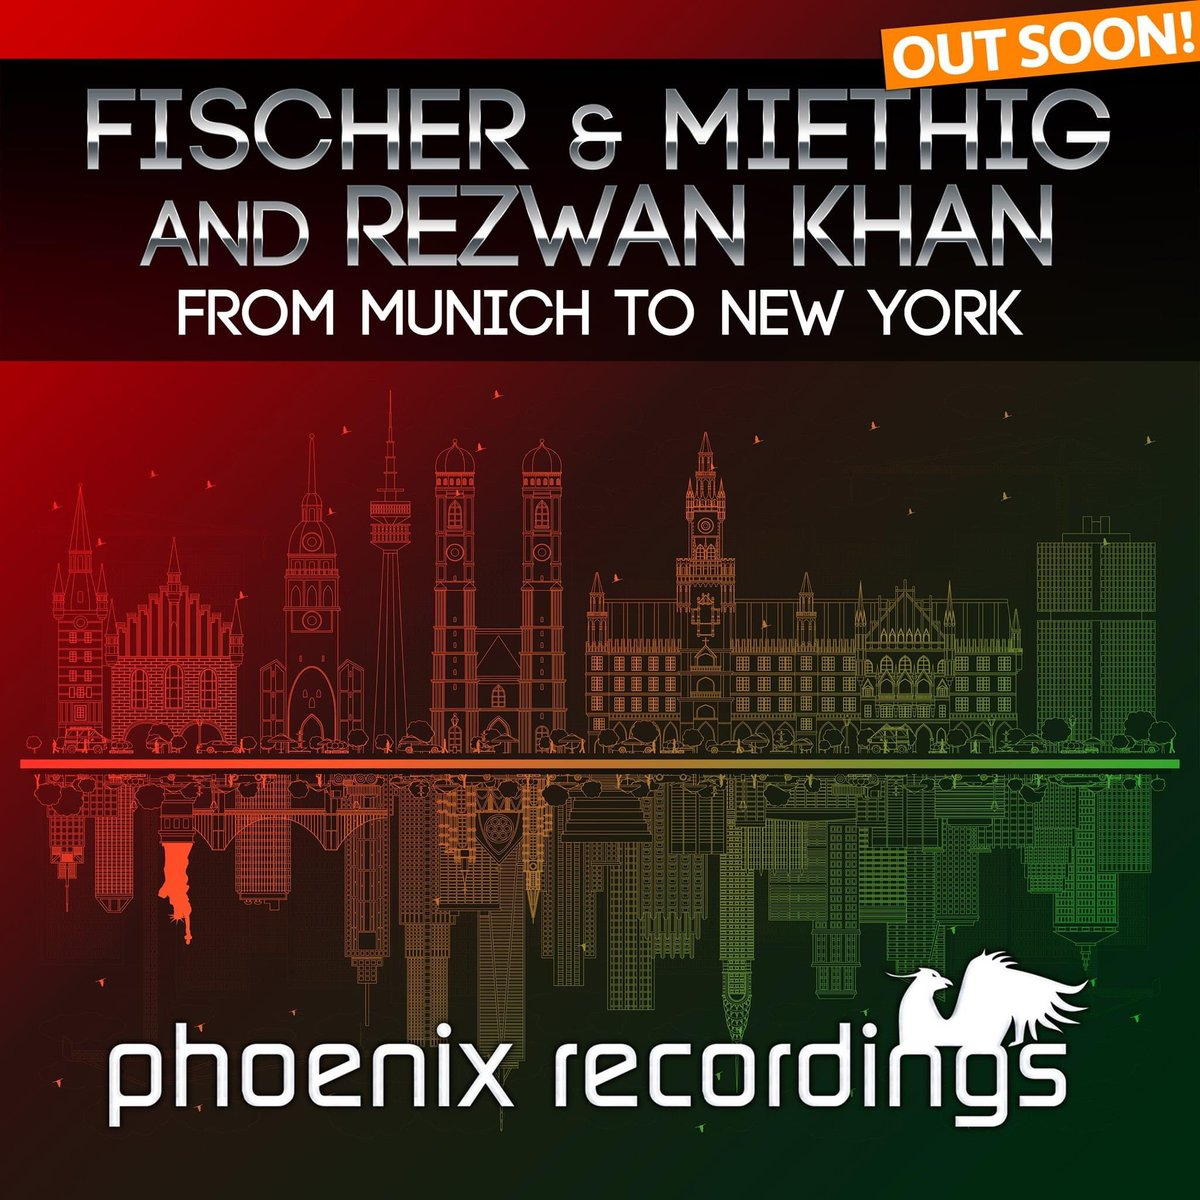 Fischer & Miethig and Rezwan Khan « From #Munich to #NewYork »    Beatport exclusive OUT 15 JUN 2020  Pre-Listen/Save  https://NIX.lnk.to/Munich2NYFA    #FischerMiethig #PhoenixRecordings #JoyrideMusic #WeAreTrance #München #NY #Beatport   <3pic.twitter.com/xsyEYkv7f0